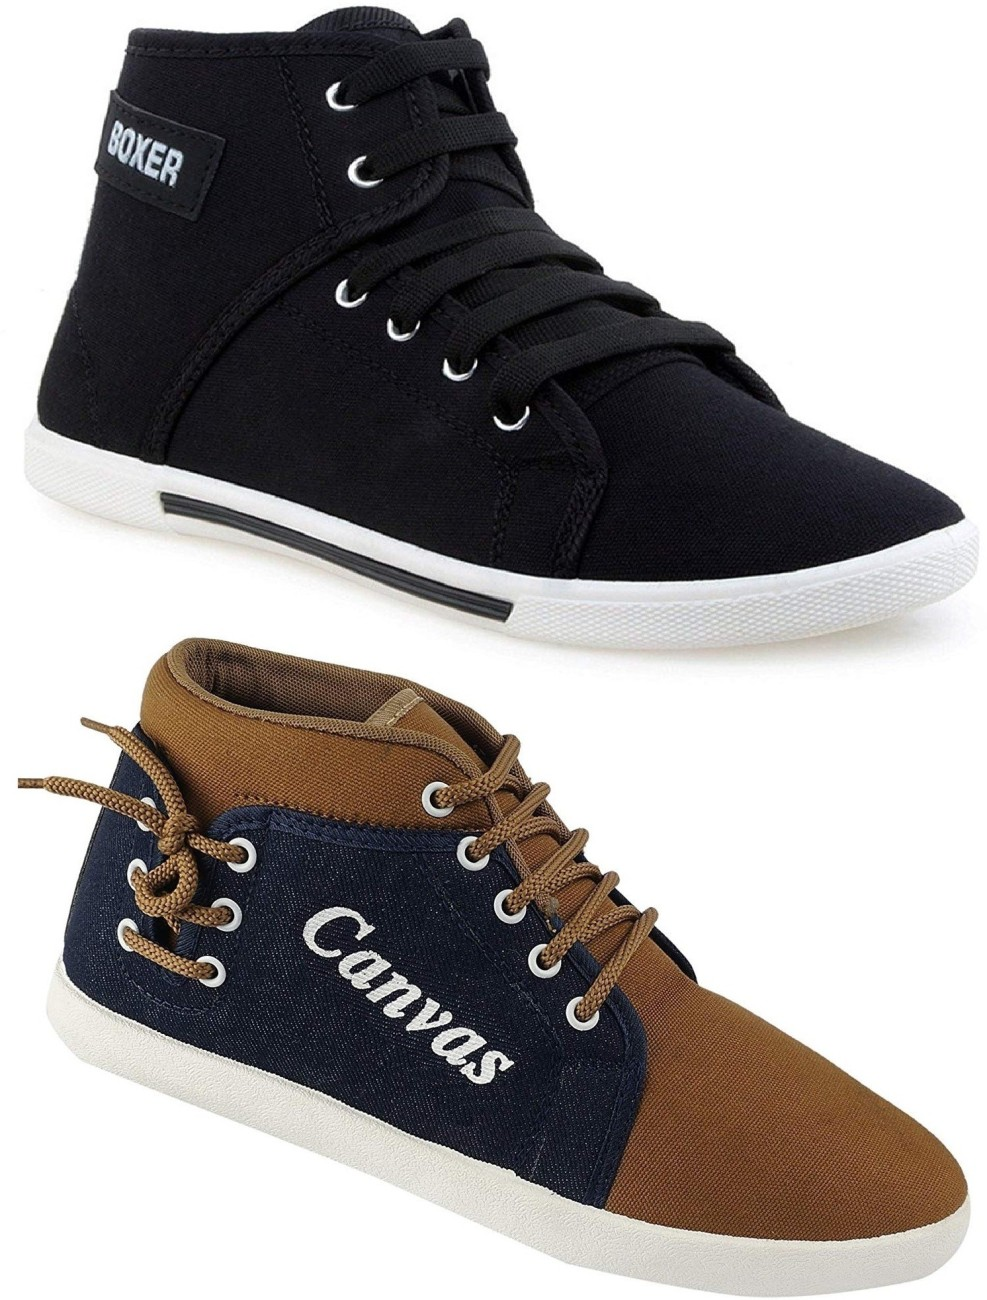 Buy Pexlo Combo Pack of 2 Casual Shoes